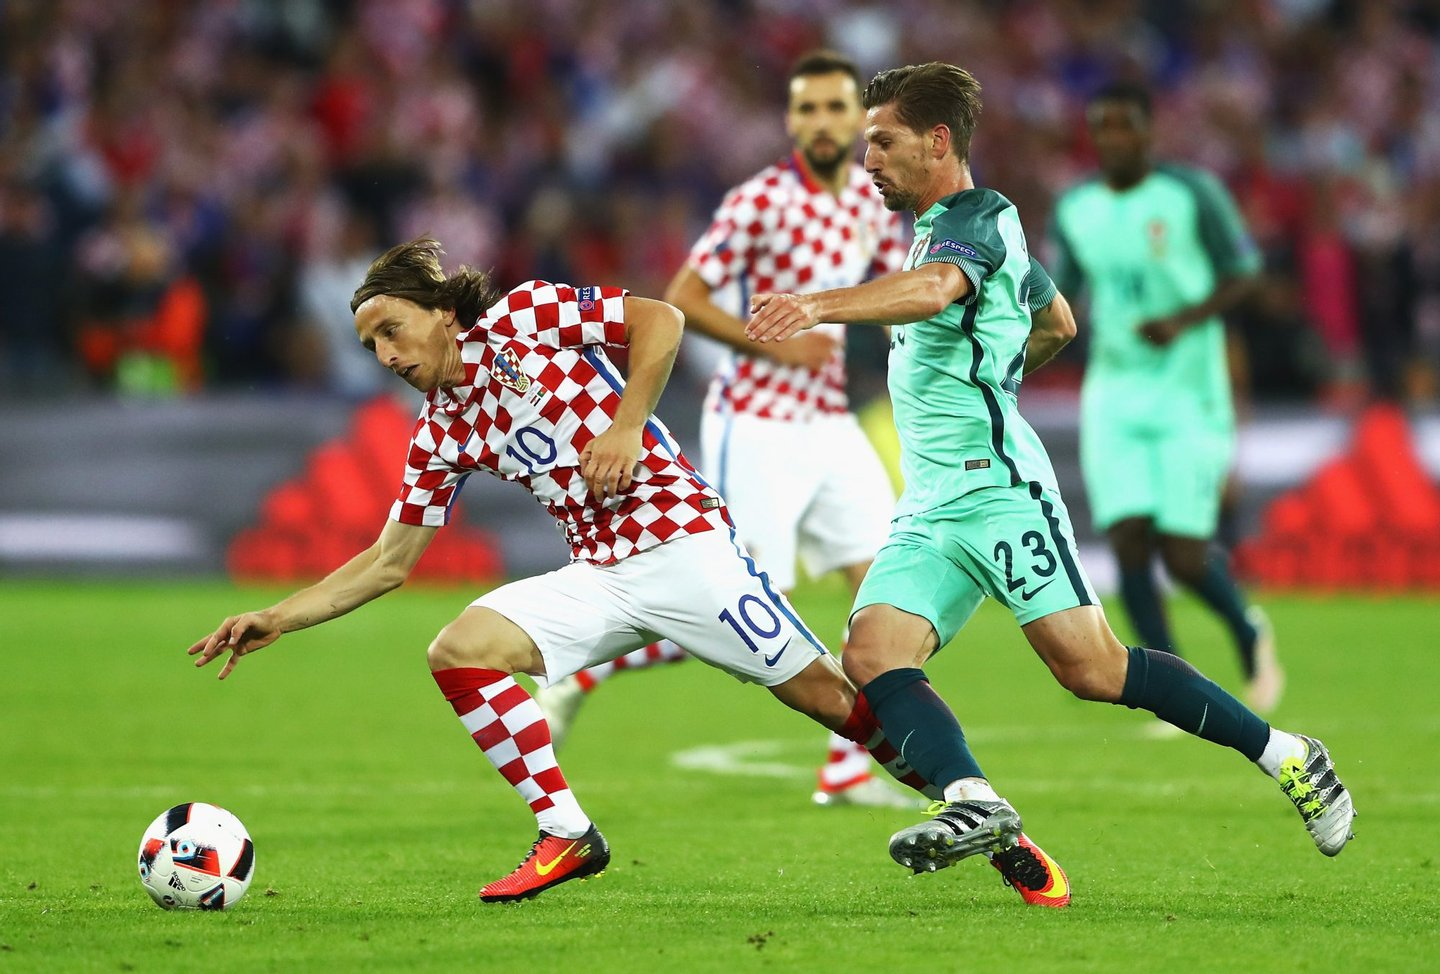 LENS, FRANCE - JUNE 25: Luka Modric of Croatia controls the ball under pressure of Adrien Silva of Portugal during the UEFA EURO 2016 round of 16 match between Croatia and Portugal at Stade Bollaert-Delelis on June 25, 2016 in Lens, France. (Photo by Clive Mason/Getty Images)